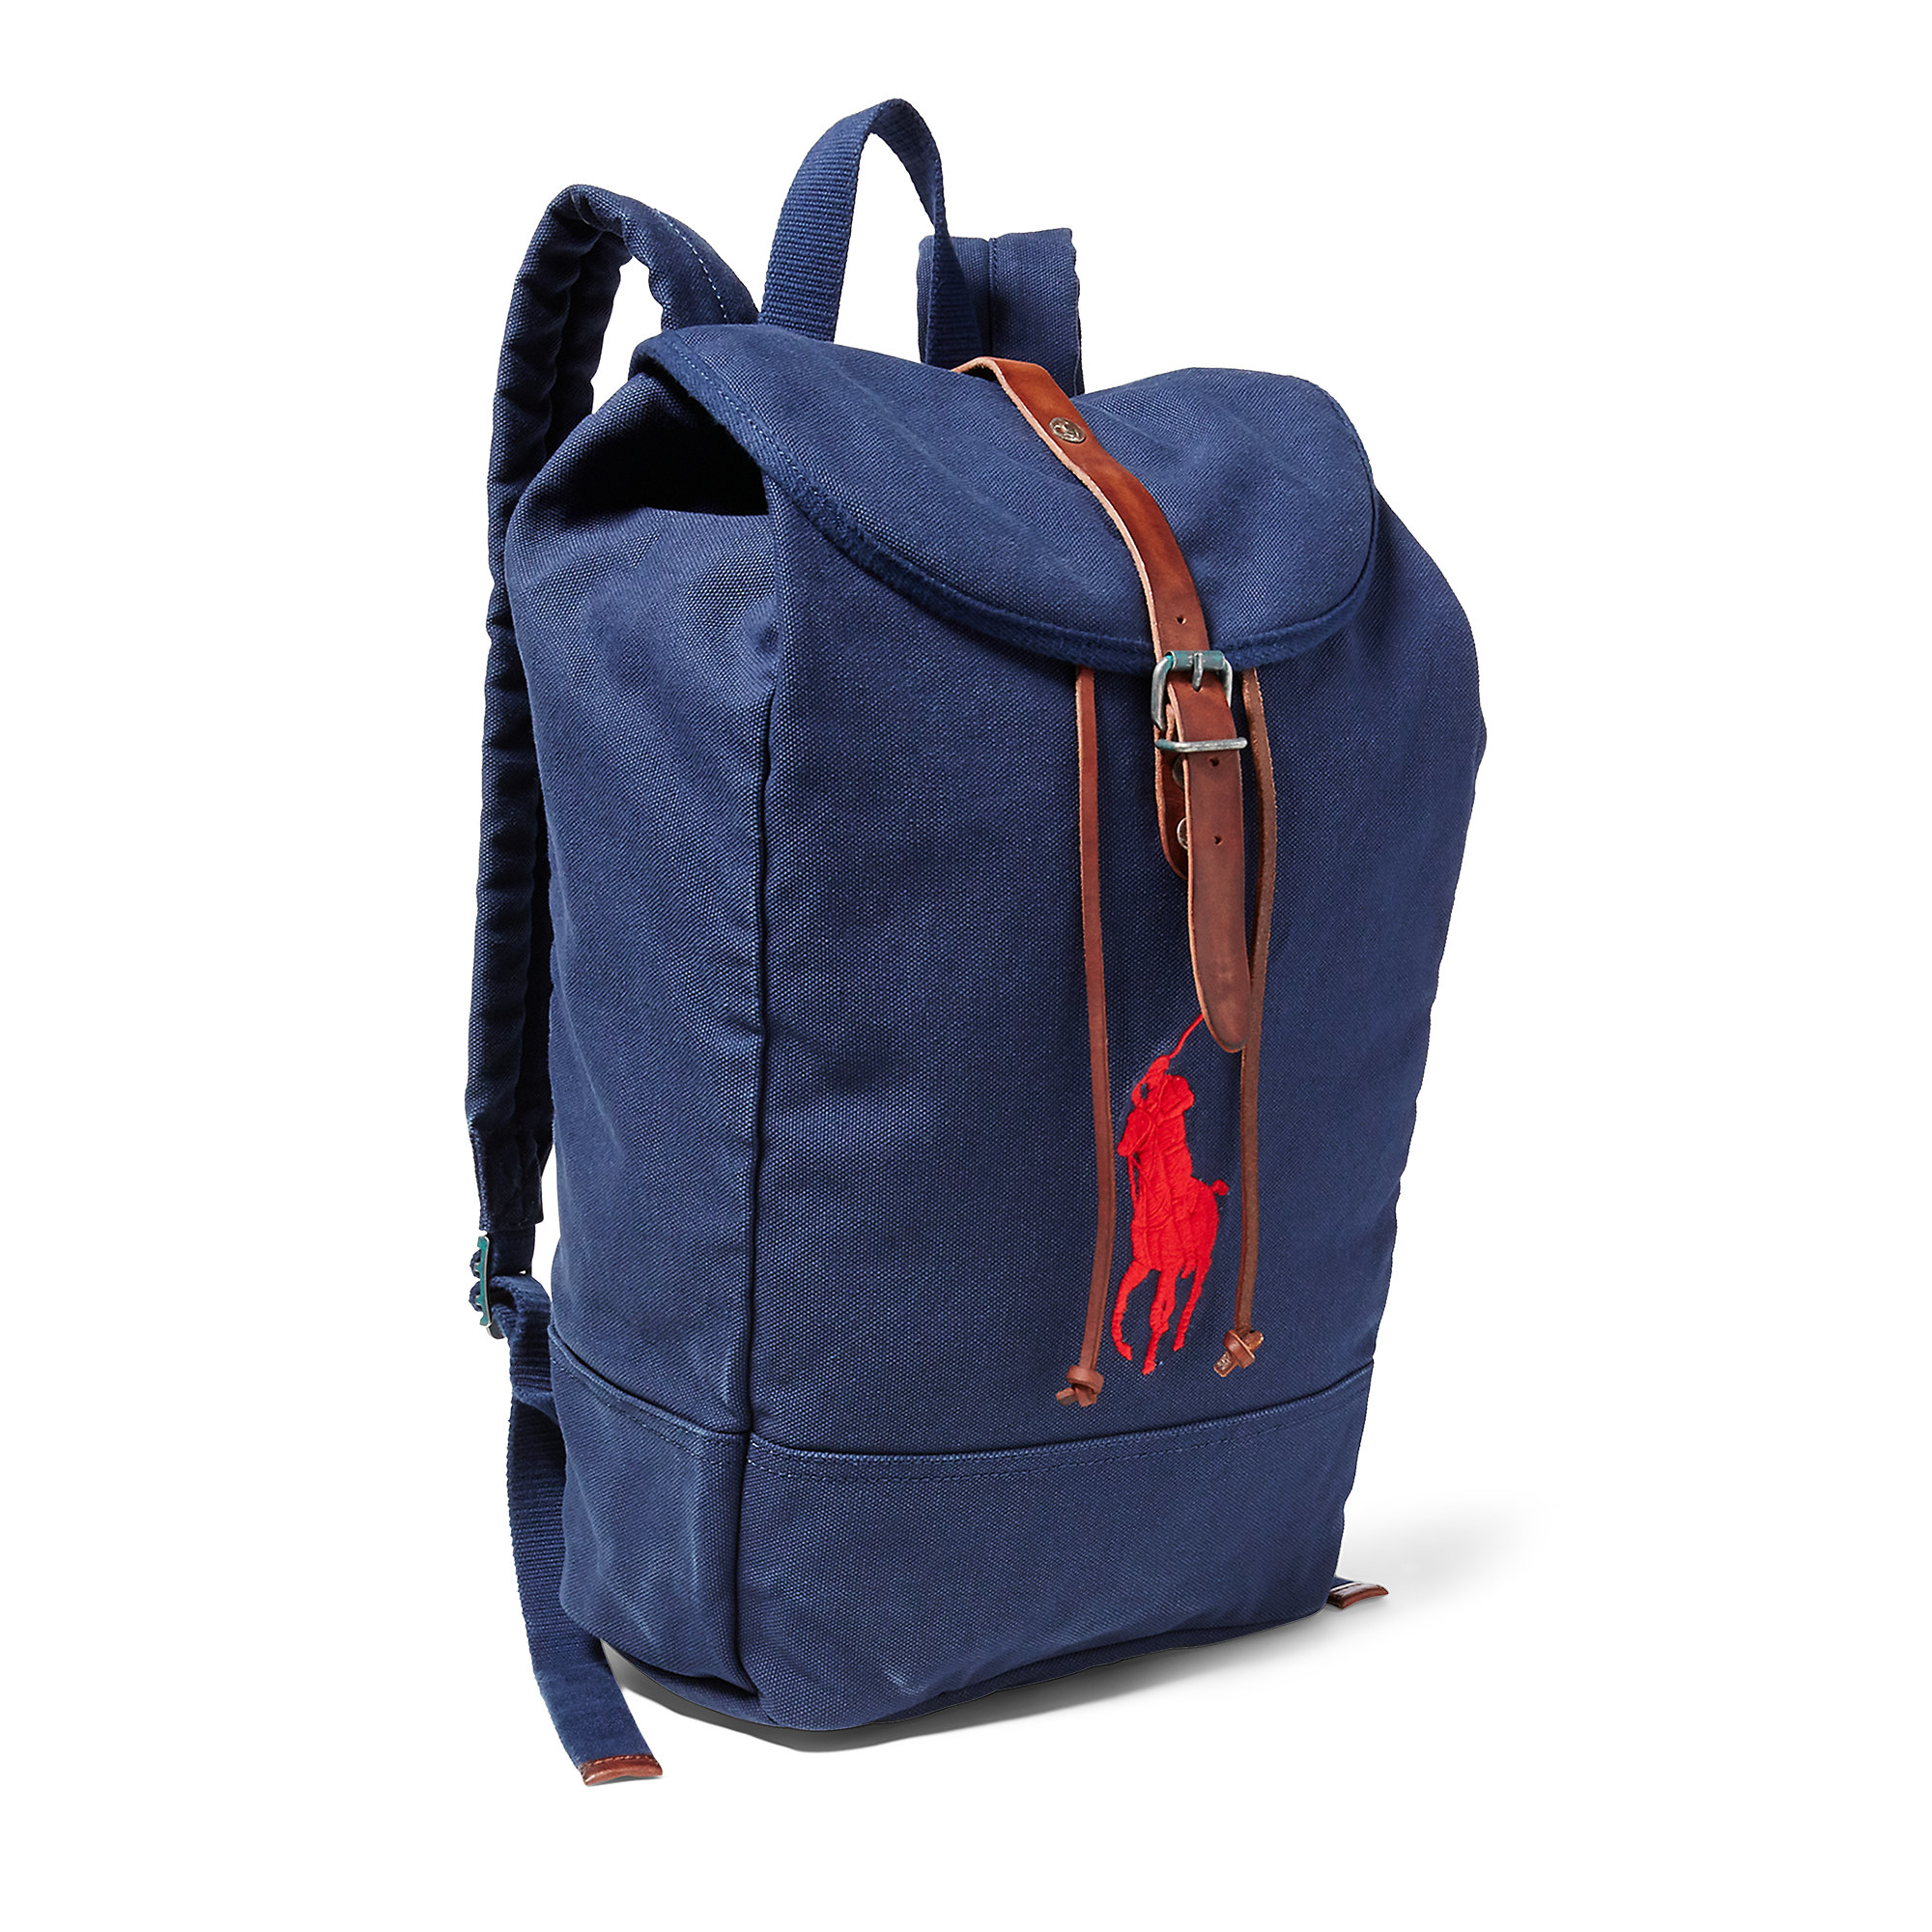 Lyst - Polo Ralph Lauren Big Pony Canvas Backpack in Blue for Men e5ae106639a46